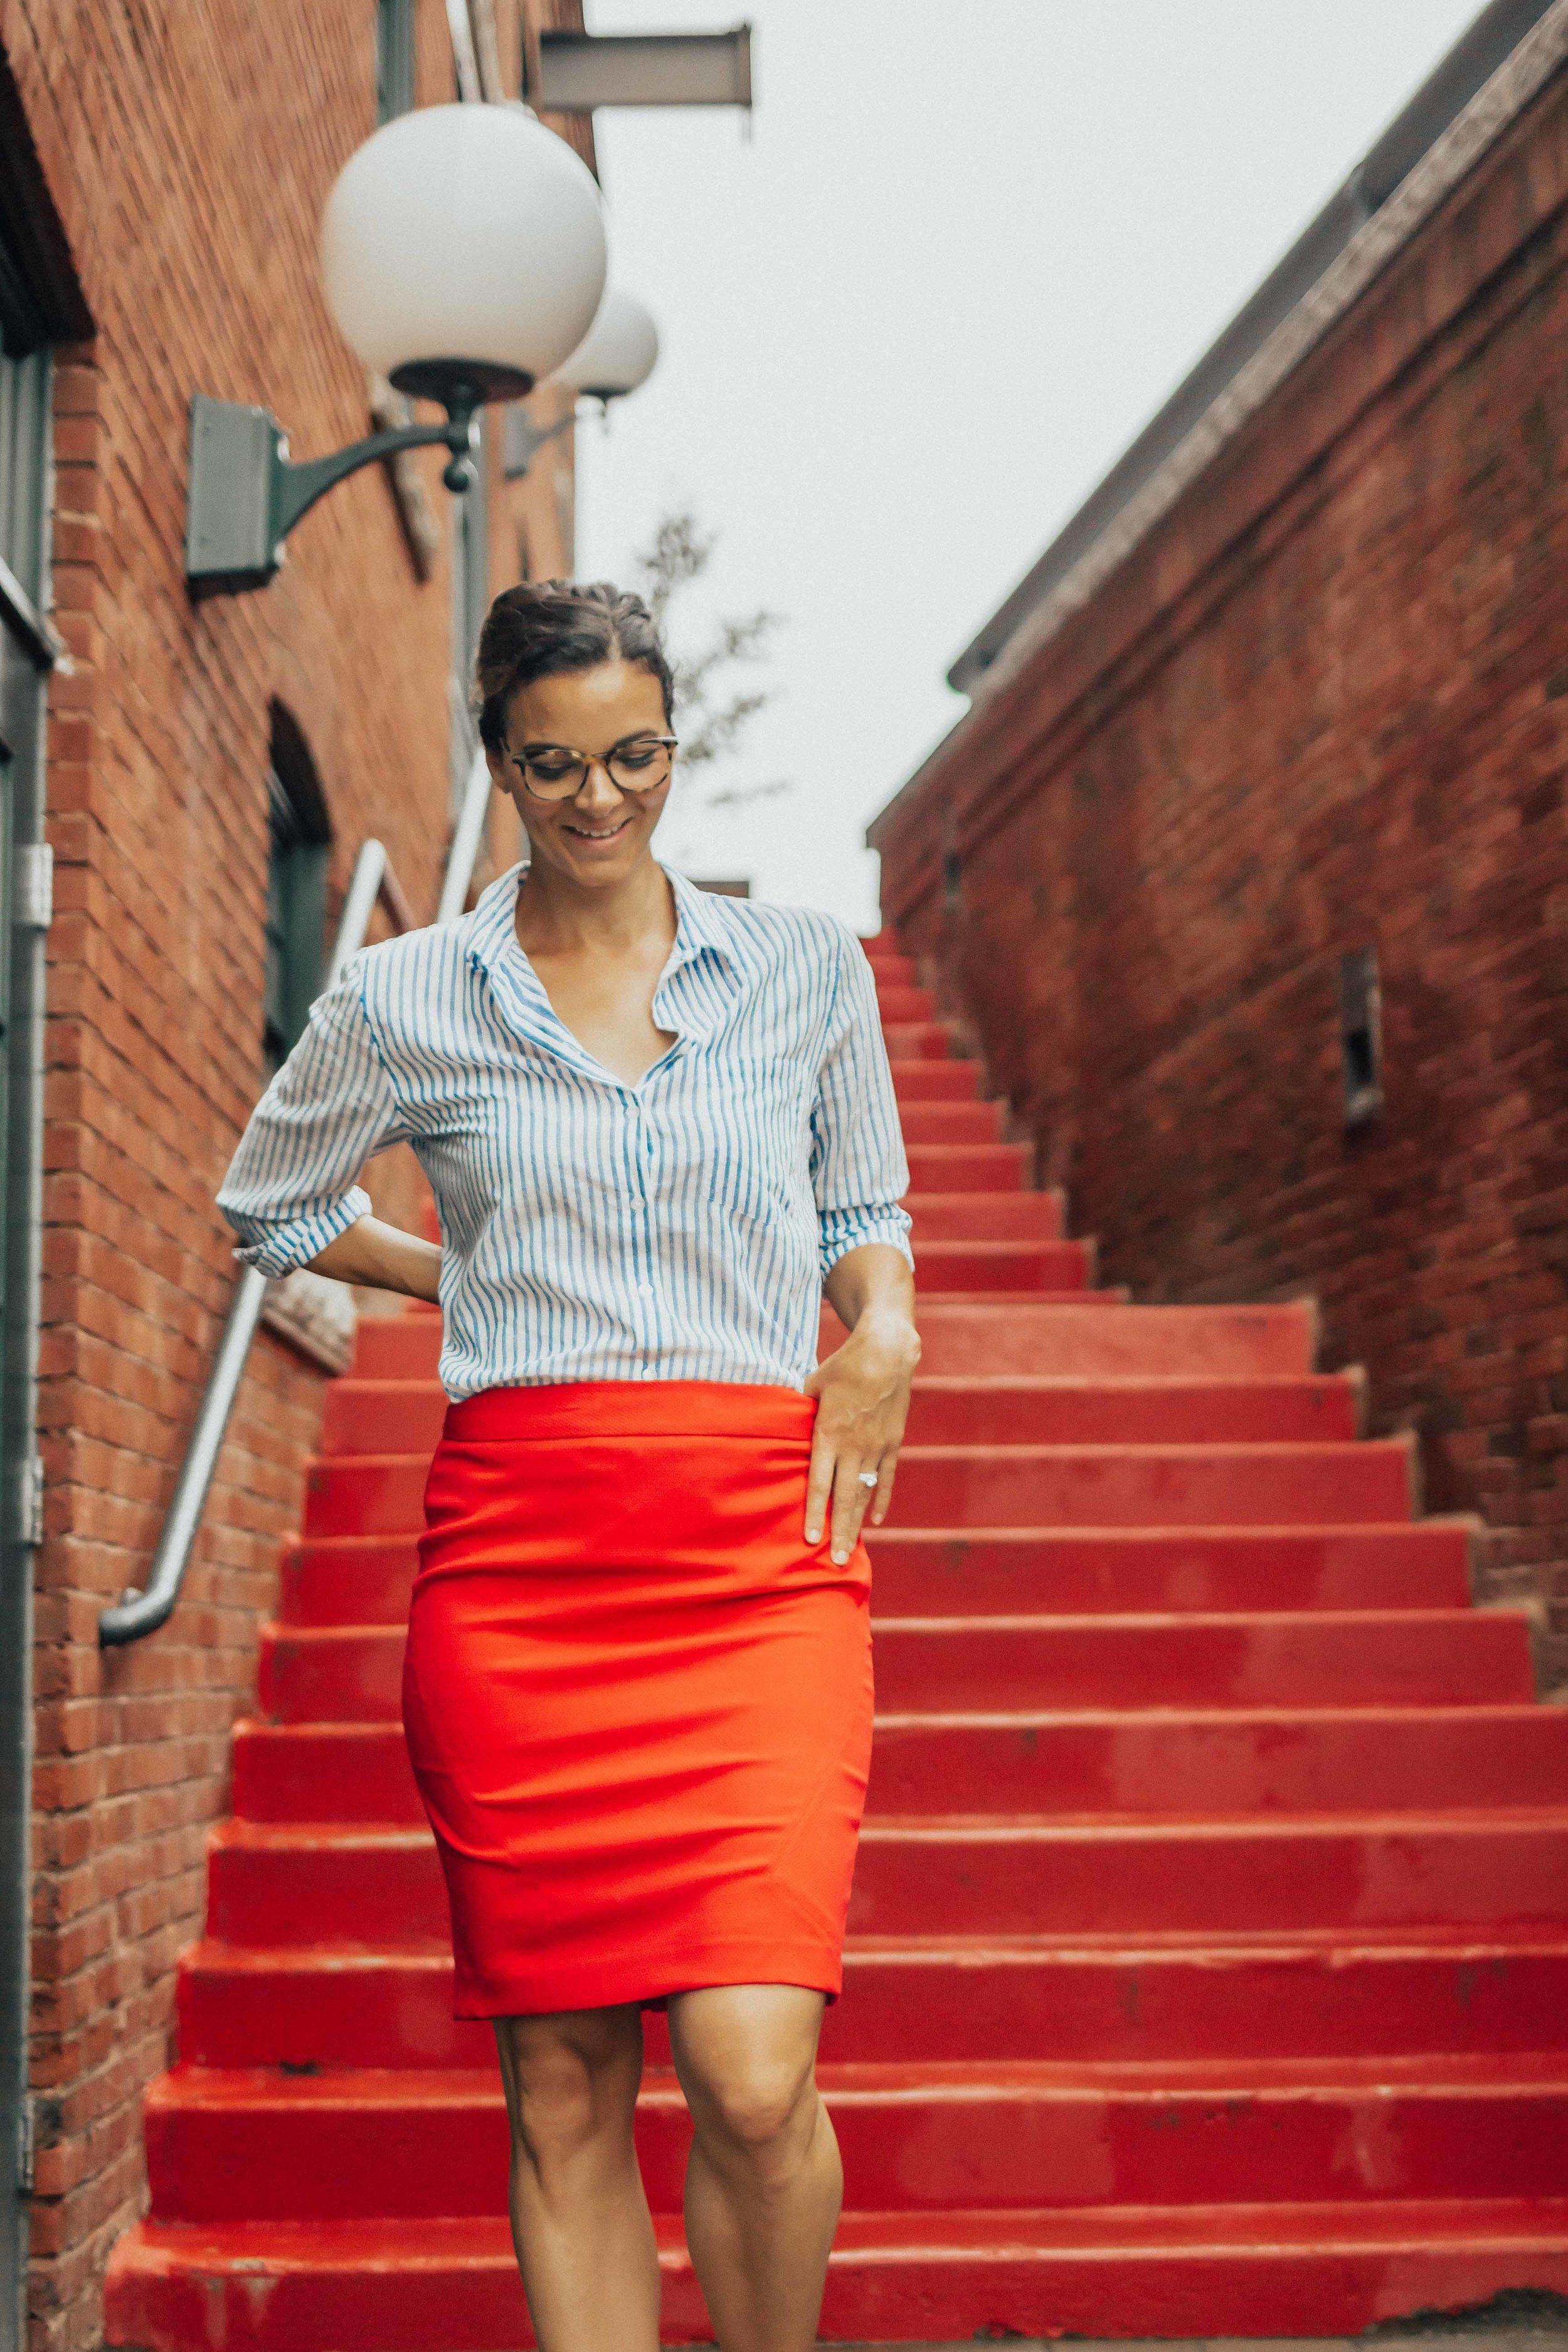 OUTFIT DETAILS - RED PENCIL SKIRT (similar here& here)STRIPED BUTTON-DOWN (under $20)NUDE HEELSGLASSES